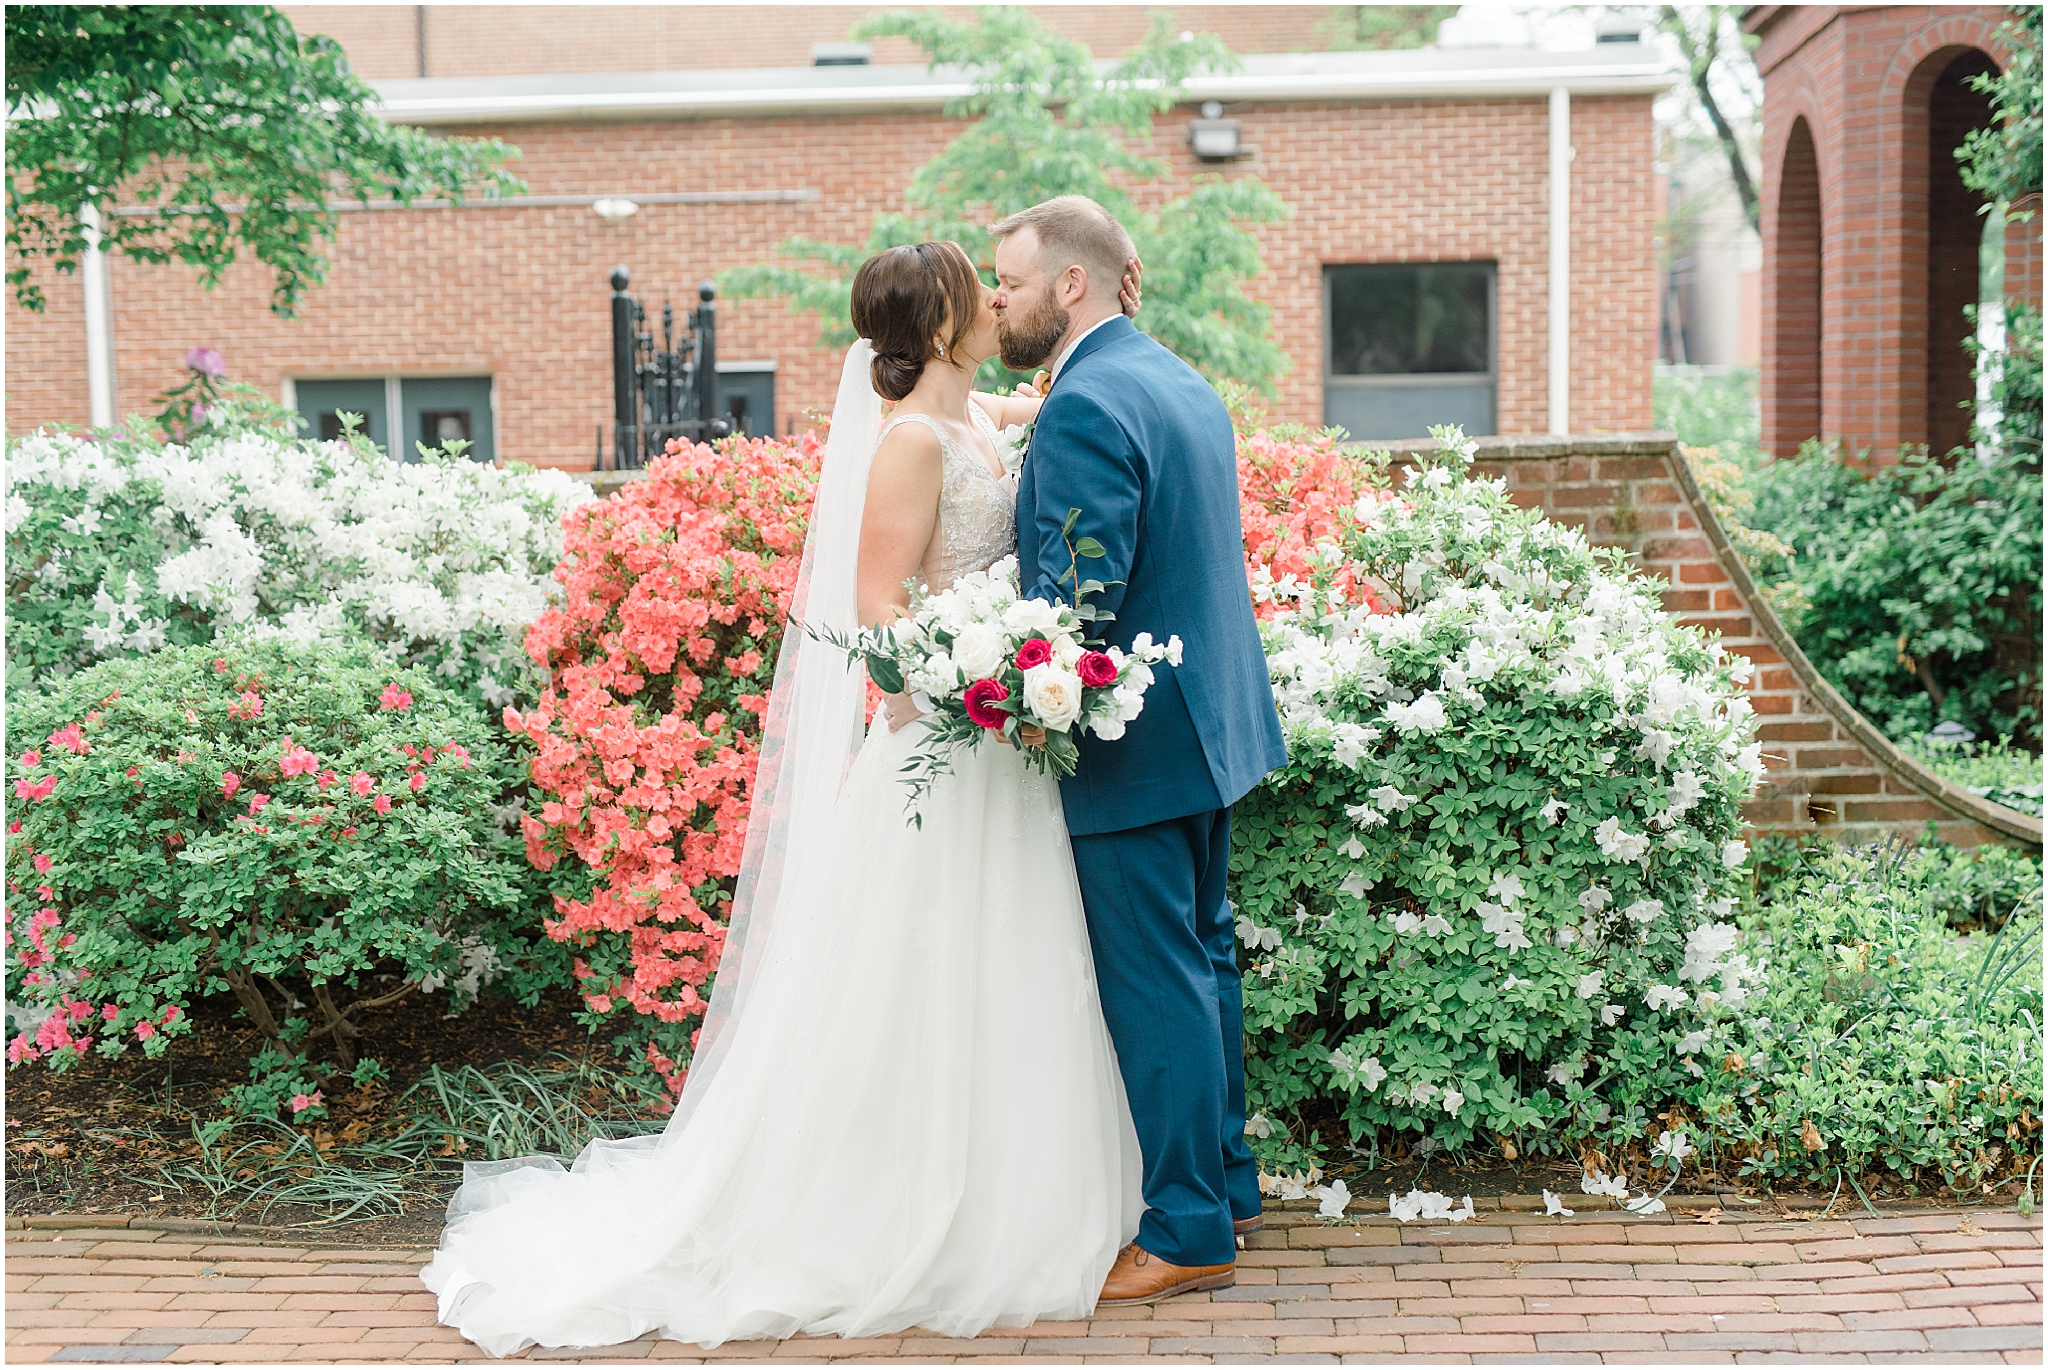 Hamilton Club of Lancaster Wedding in Lancaster, PA by Lancaster Wedding Photographer Olivia Rae Photography